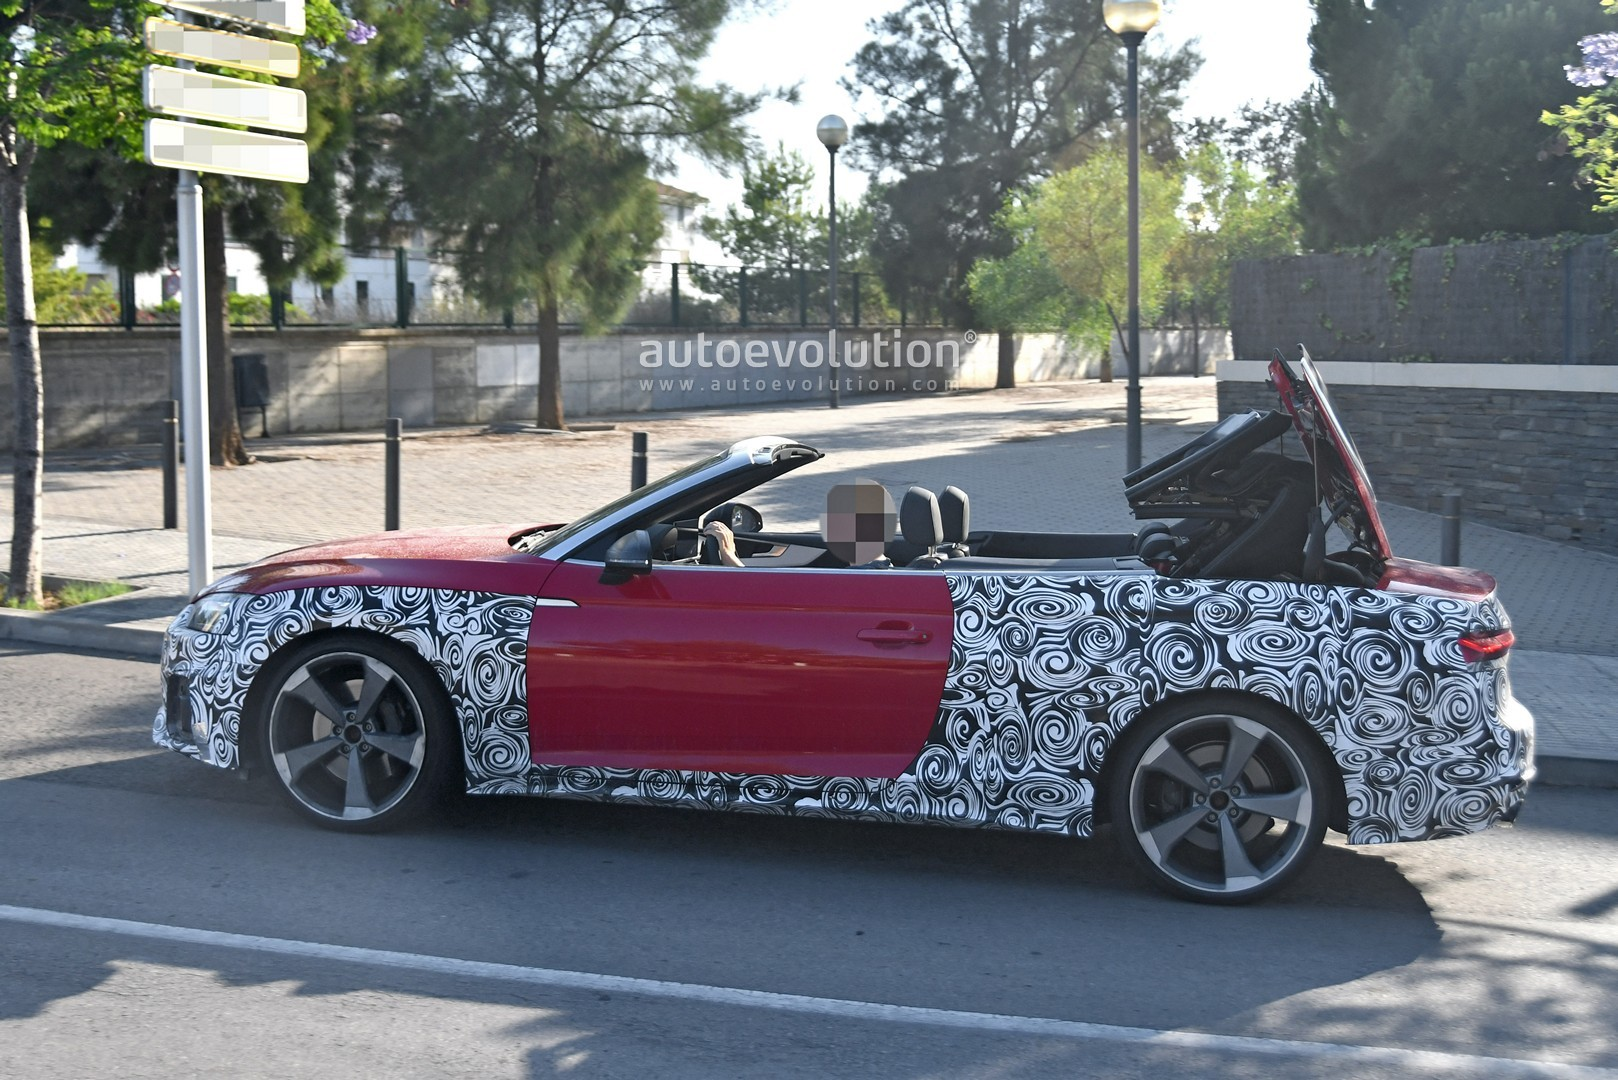 2020 - [Audi] A5 Coupé/Cab/SB 2021-audi-s5-facelift-spied-with-cabrio-top-in-action-shows-minimal-changes_5